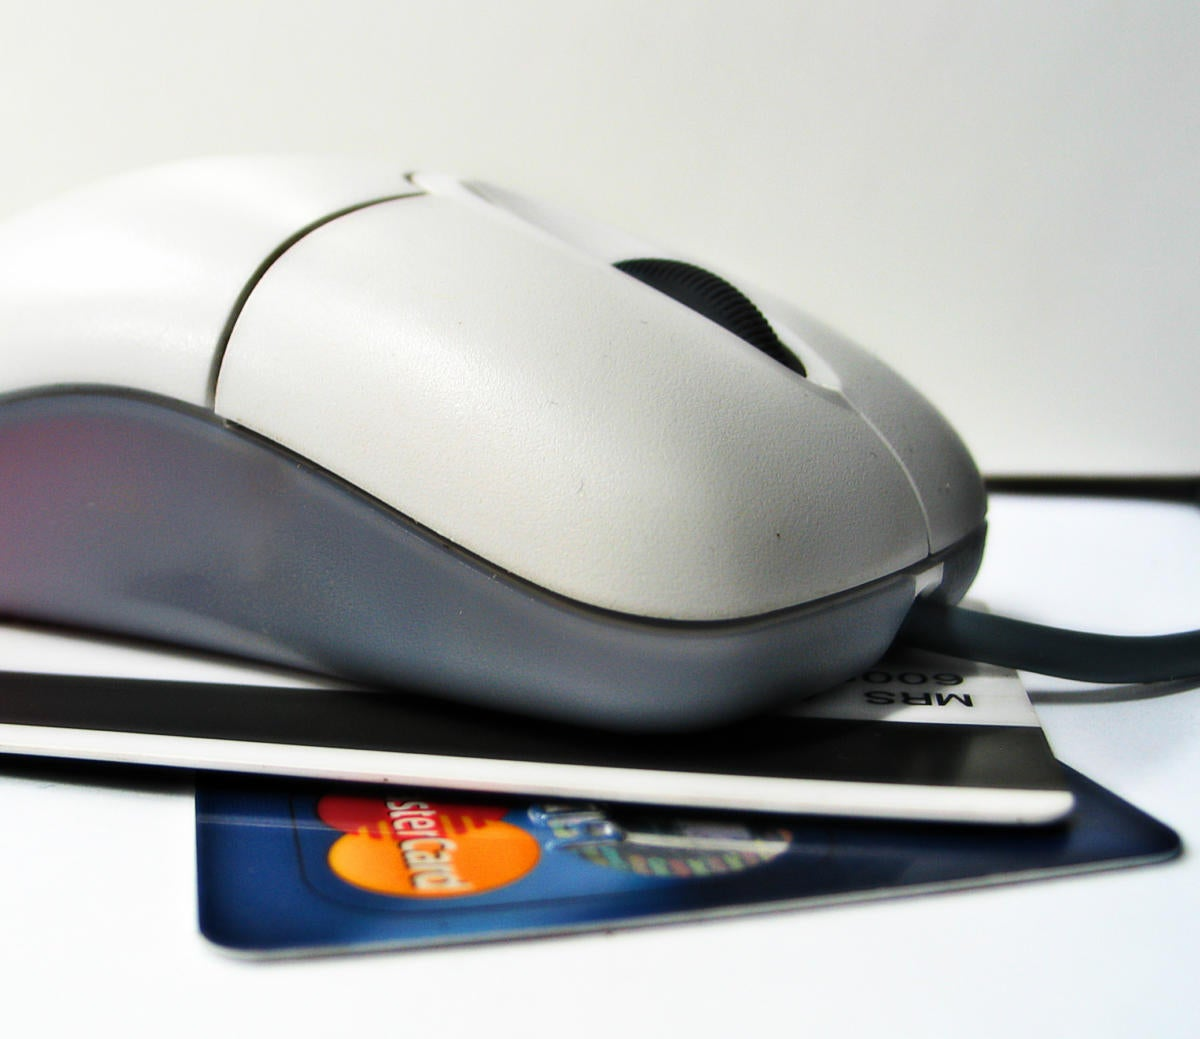 Hackers steal credit card information from Web.com